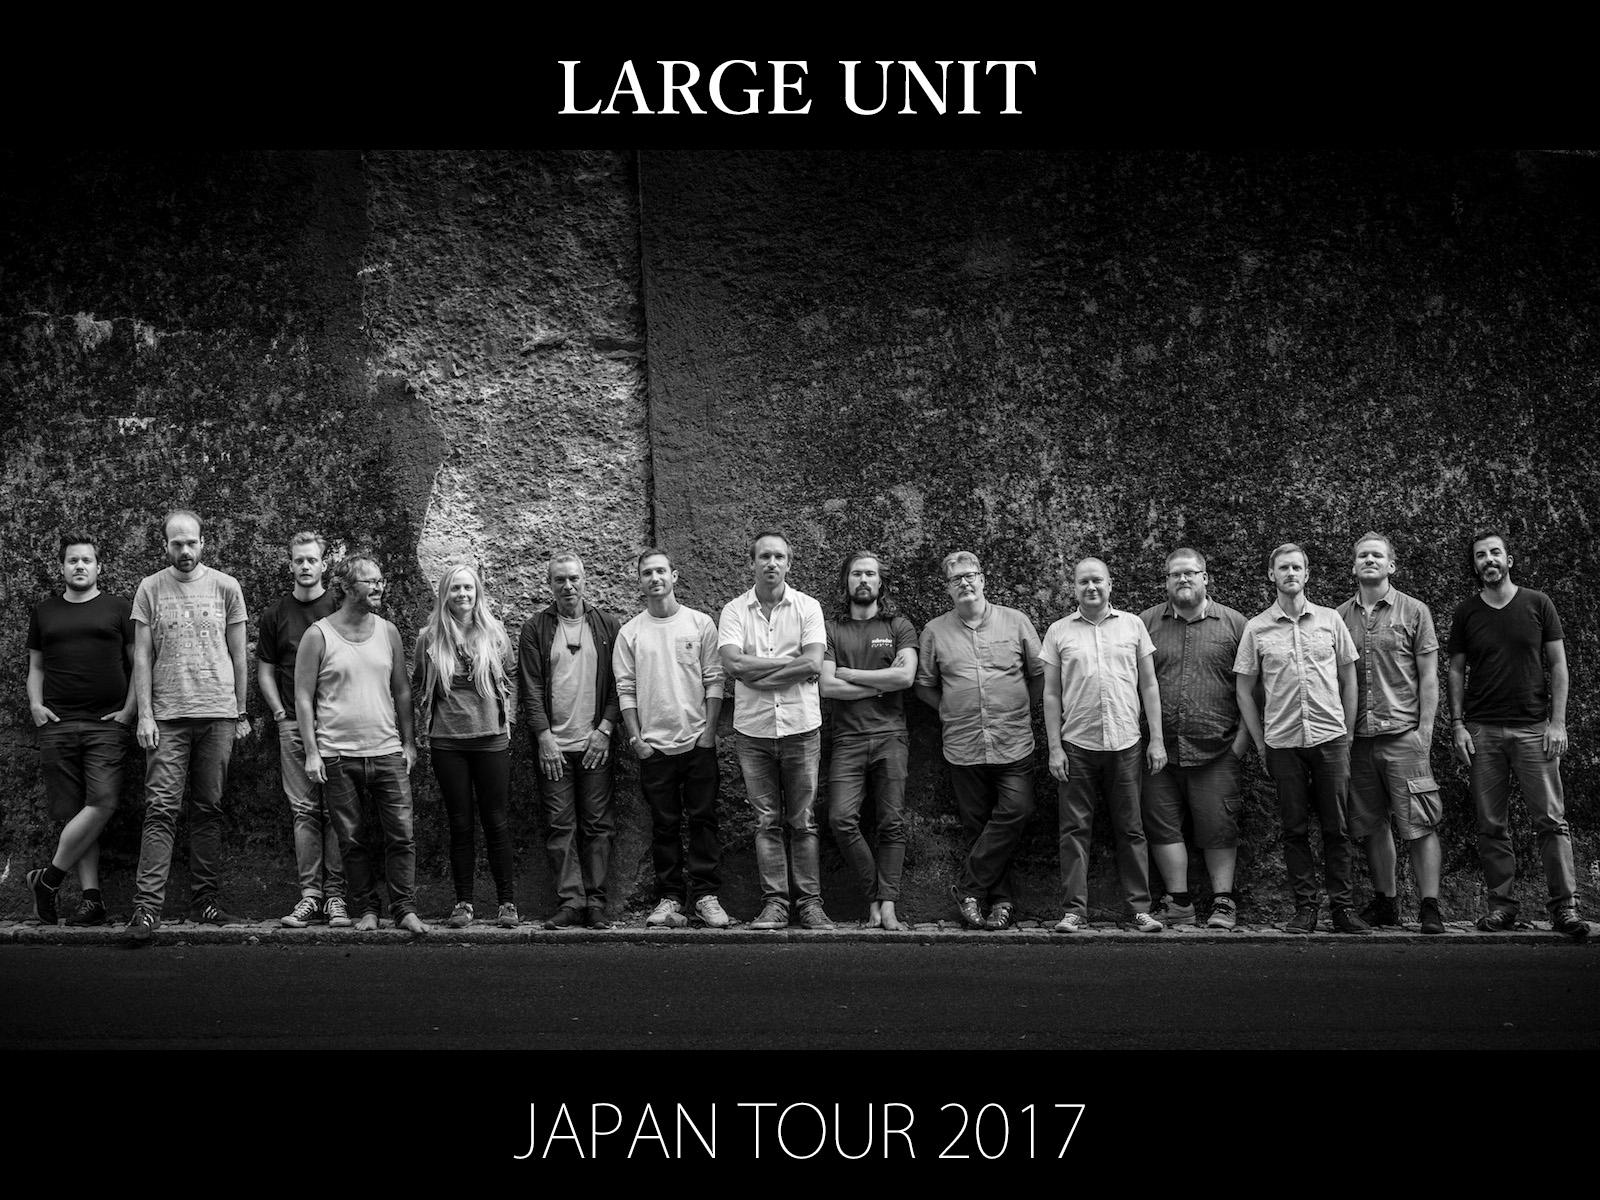 LARGE UNIT JAPAN TOUR 2017